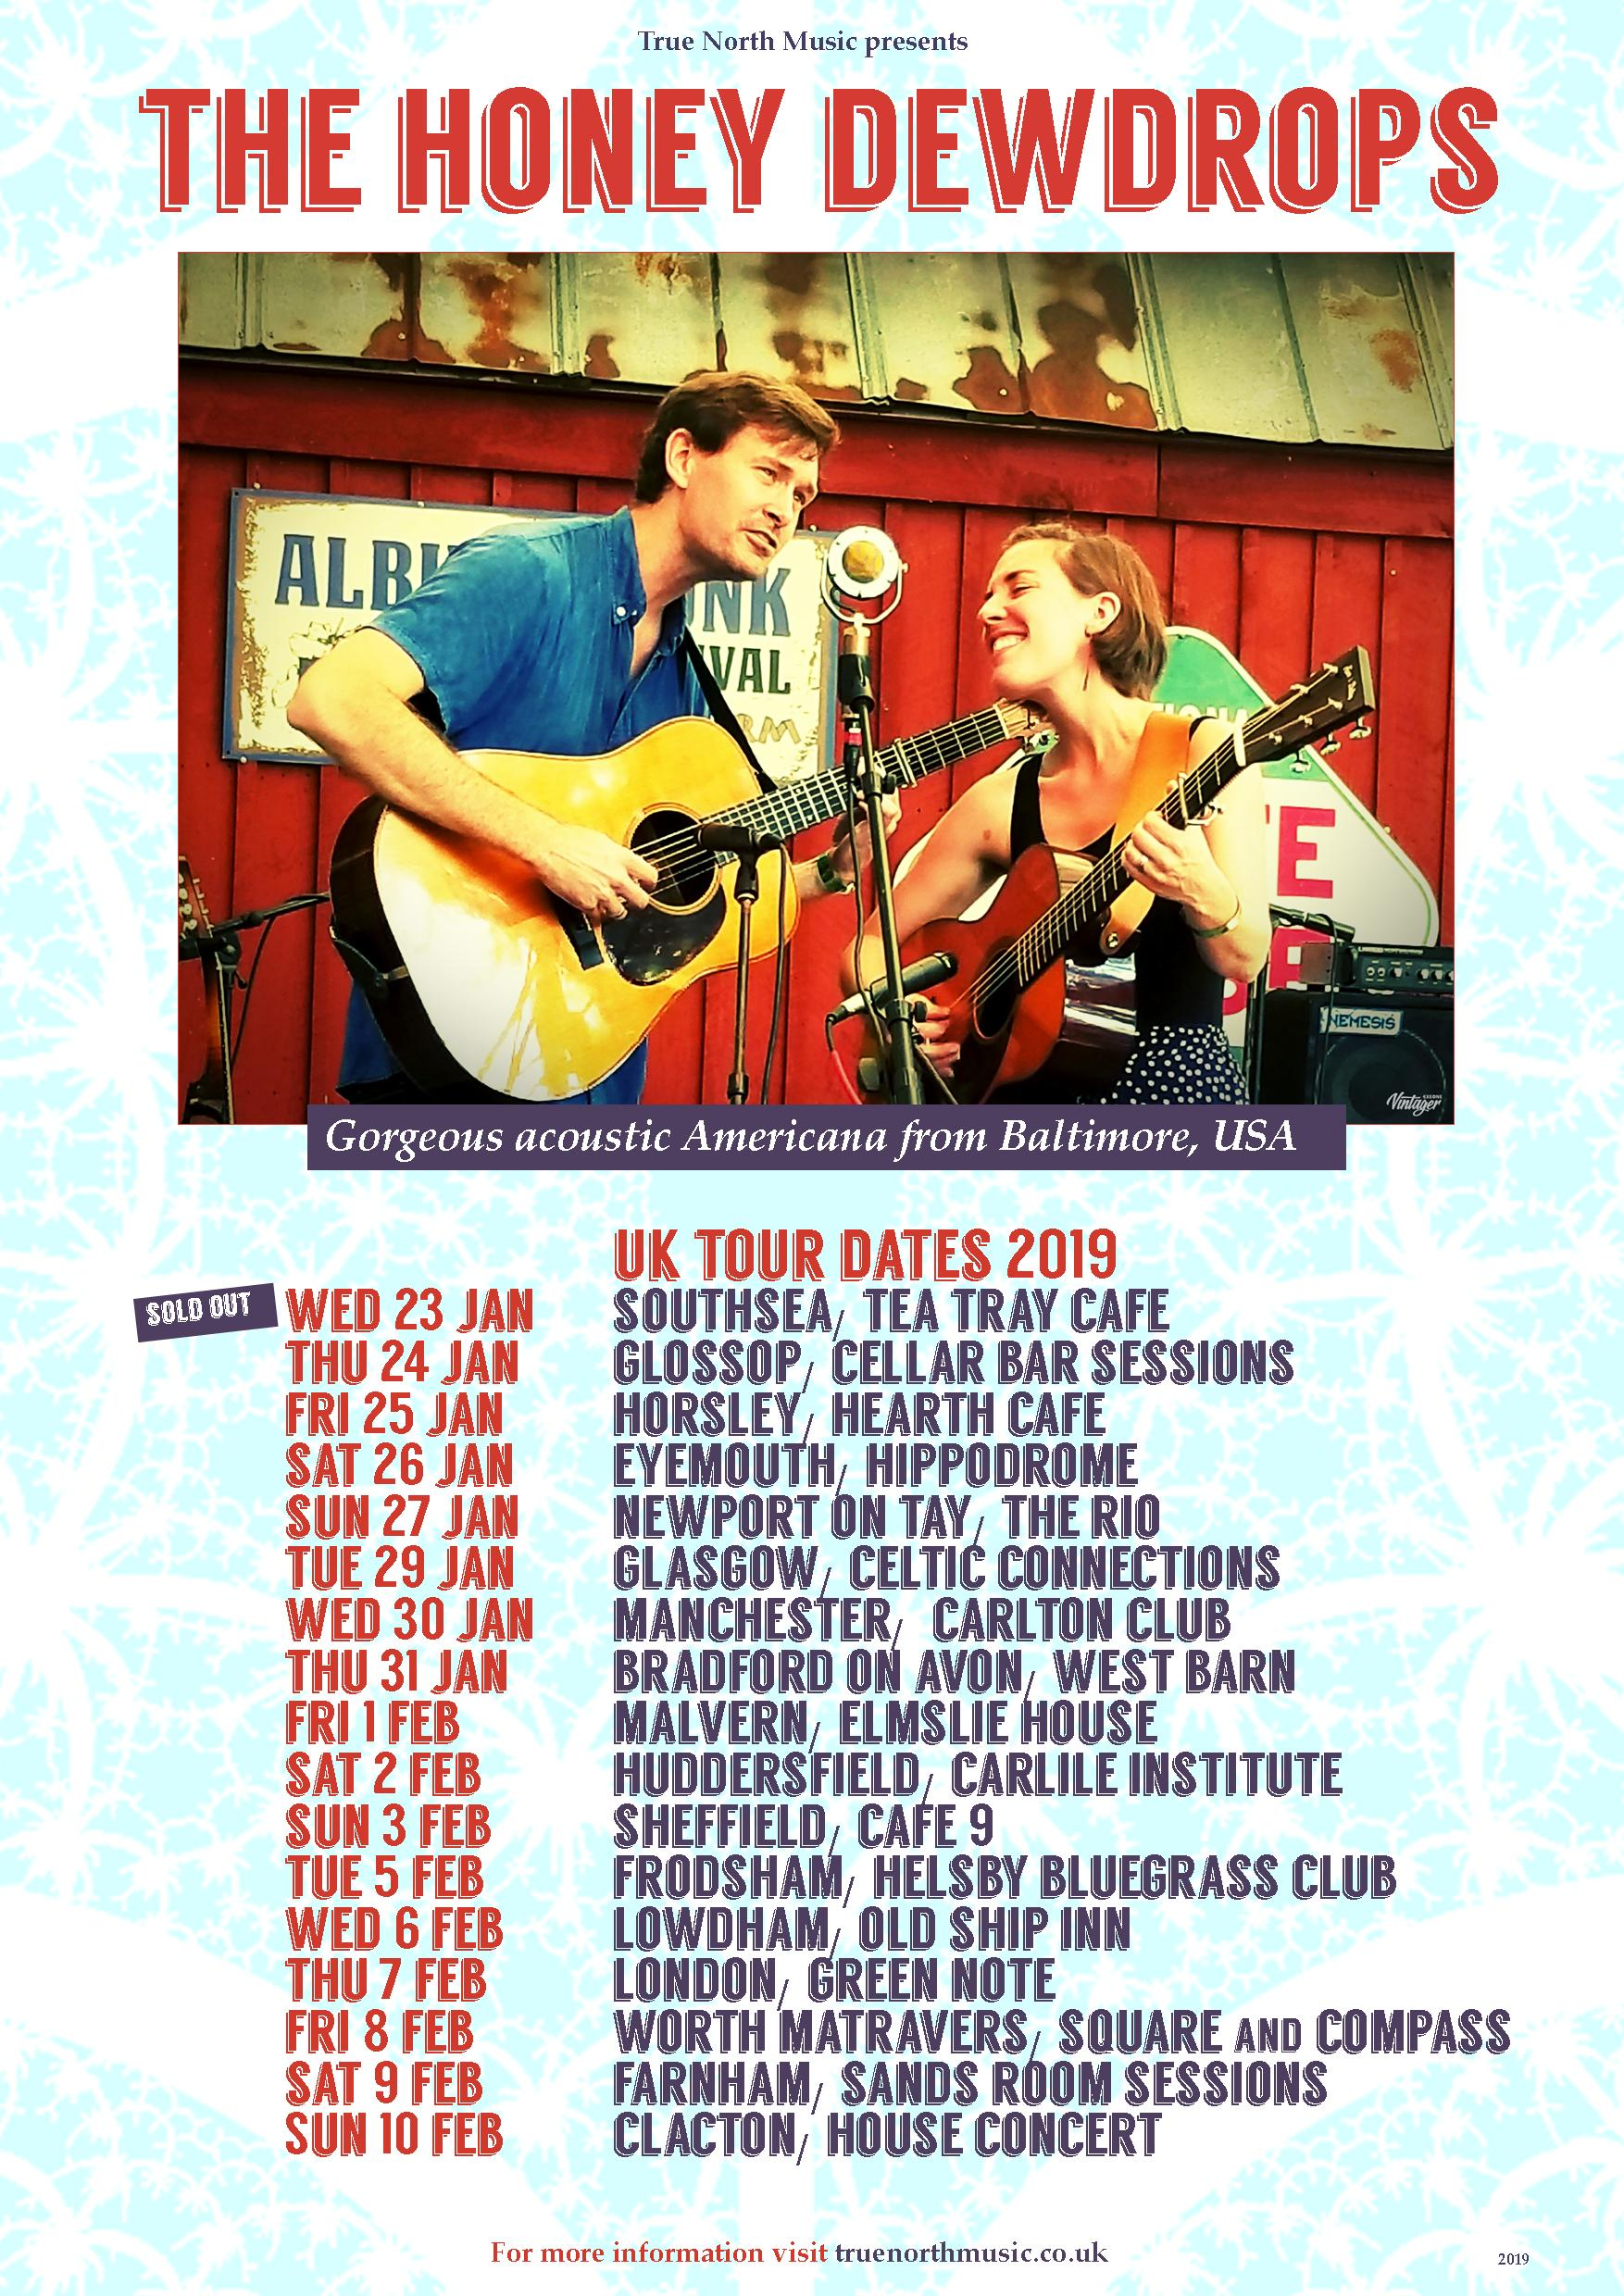 Honey Dewdrops tour dates poster